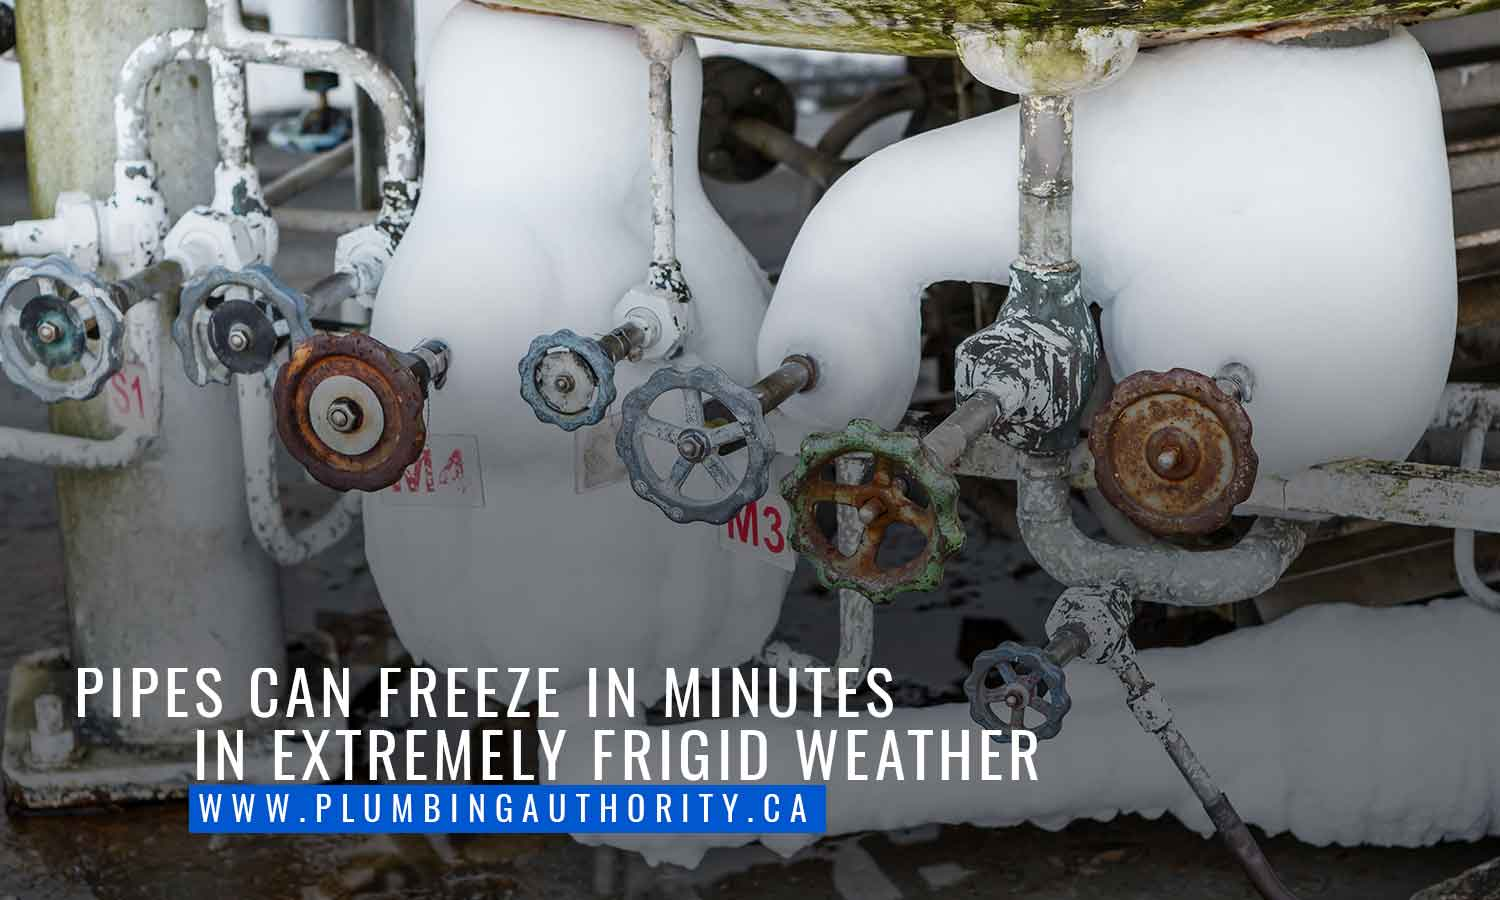 Pipes-can-freeze-in-minutes-in-extremely-frigid-weather